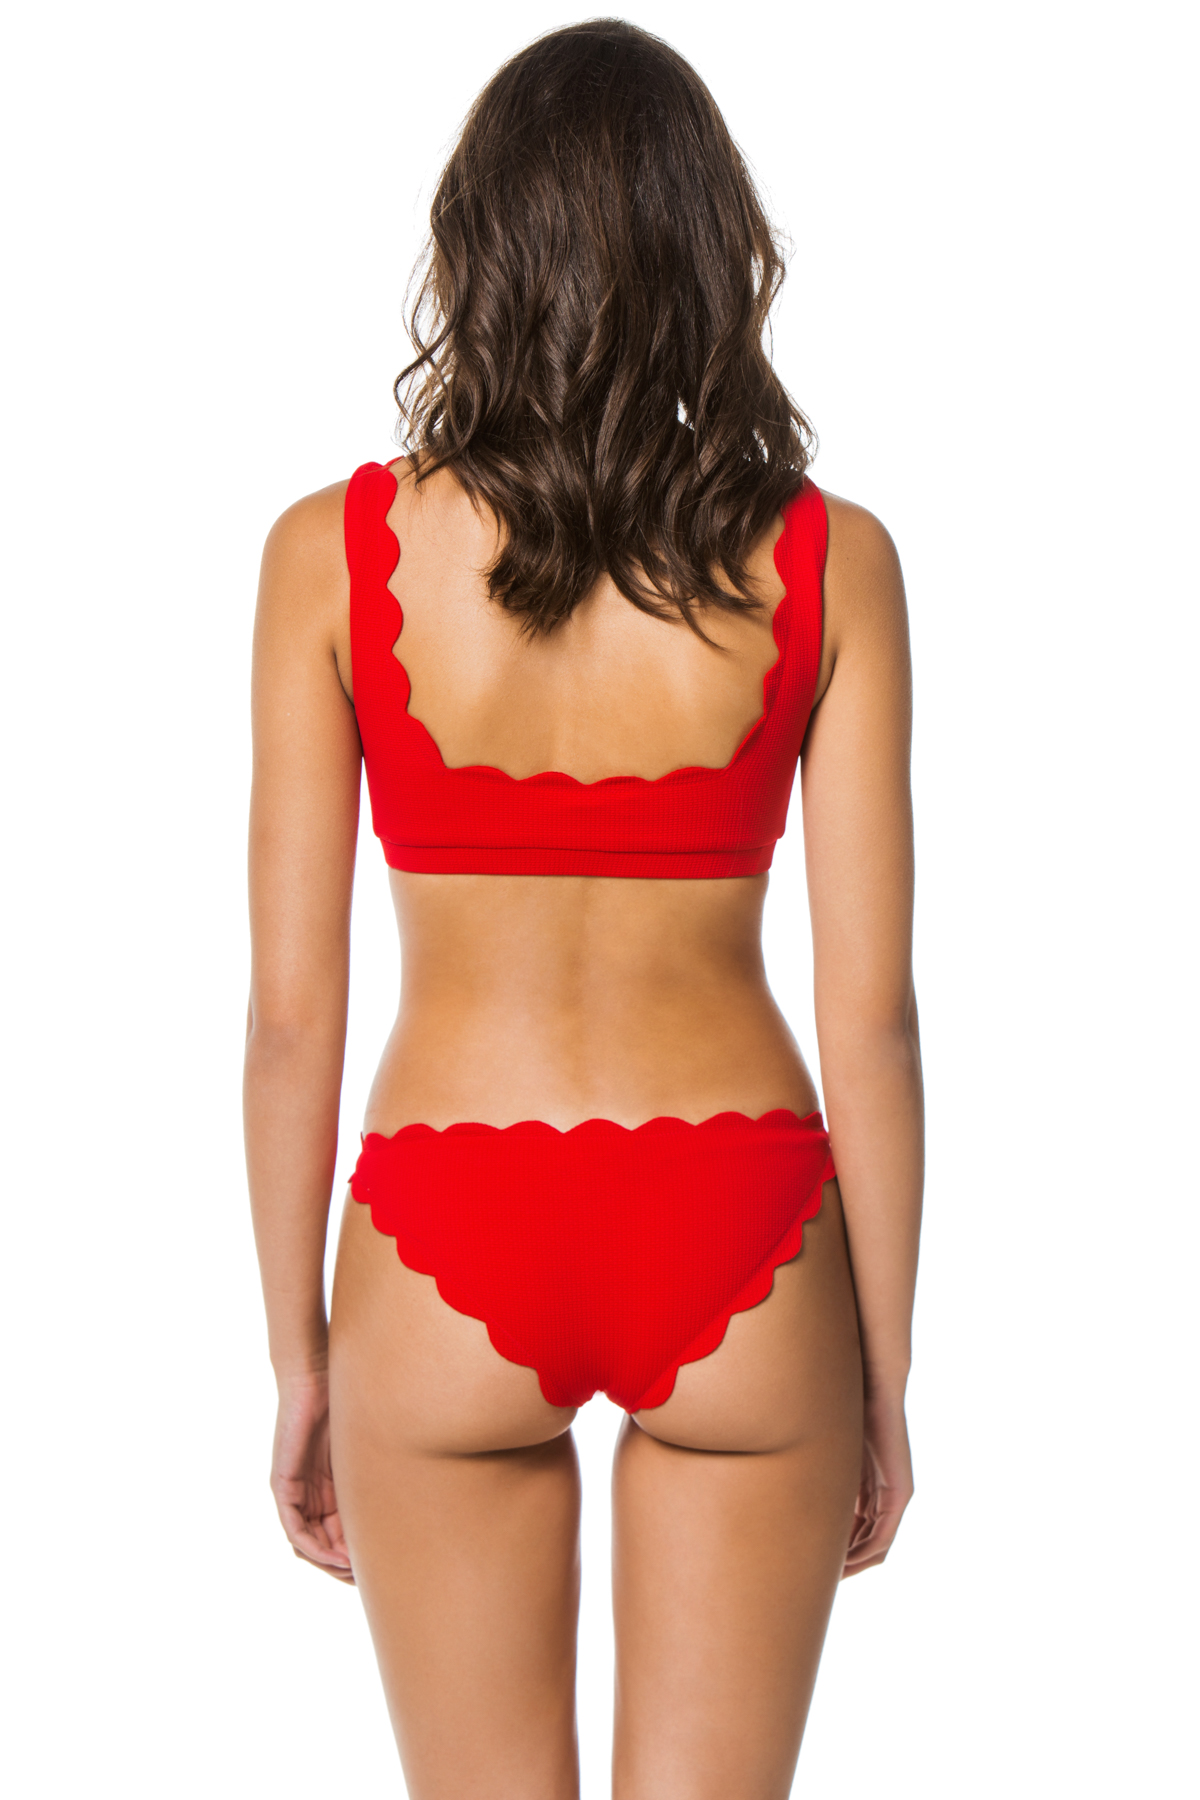 Palm Springs Scalloped Bralette Bikini Top - Red 6